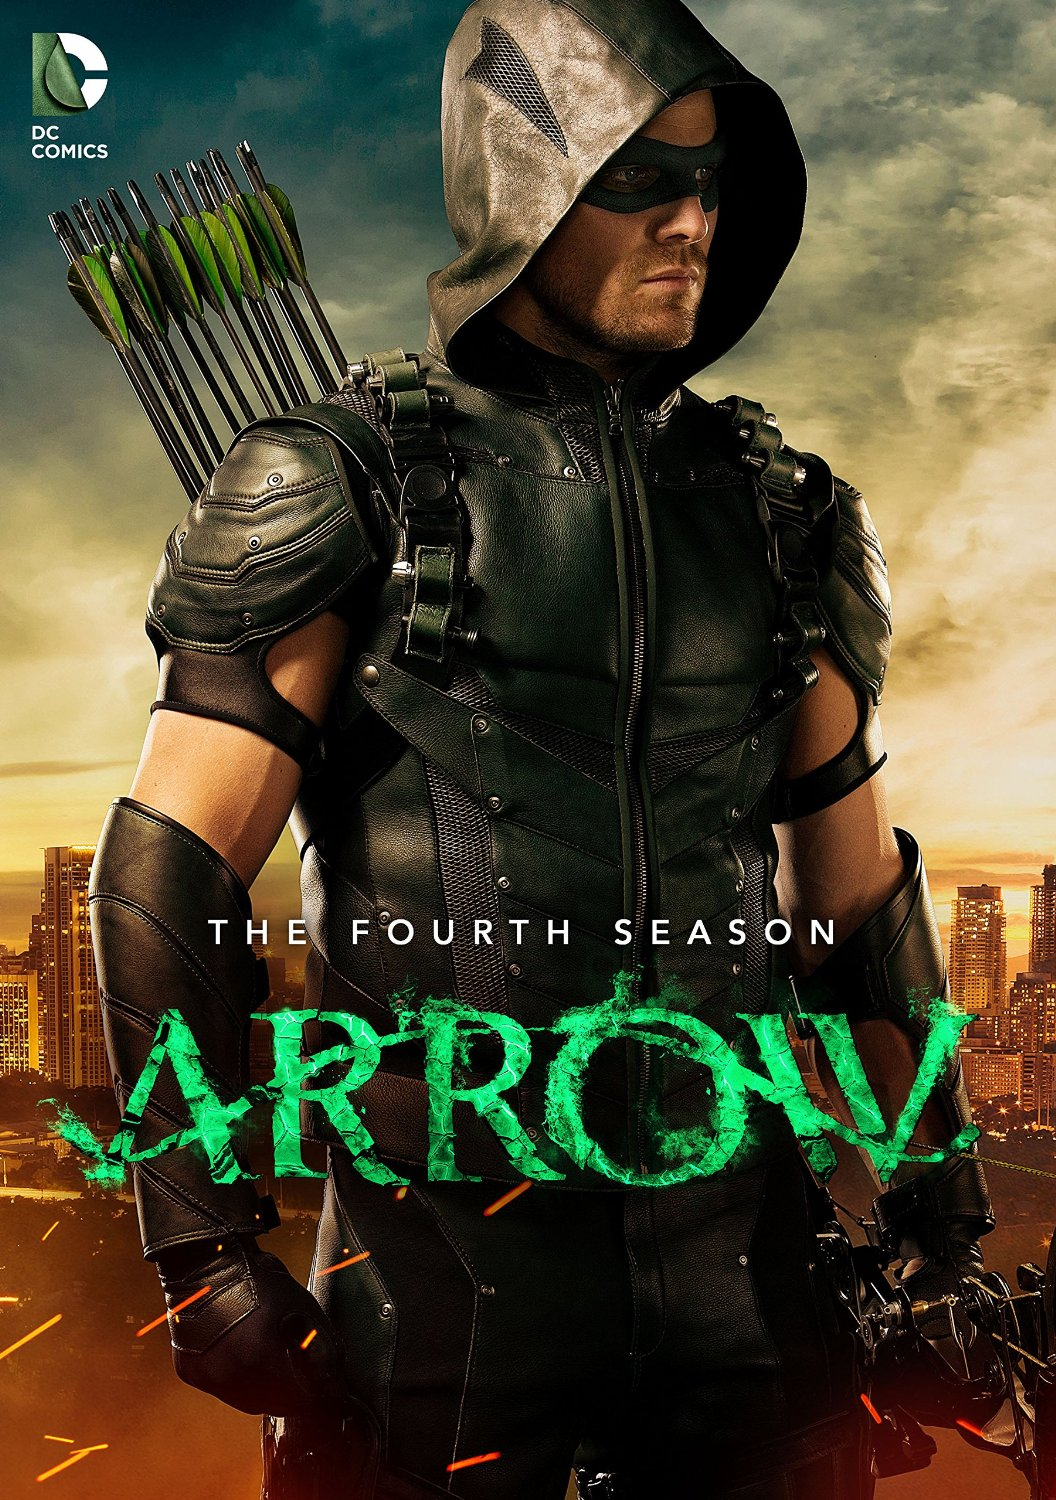 Arrow [Season 4] [2015] [DVD9] [NTSC] [Subitulado]